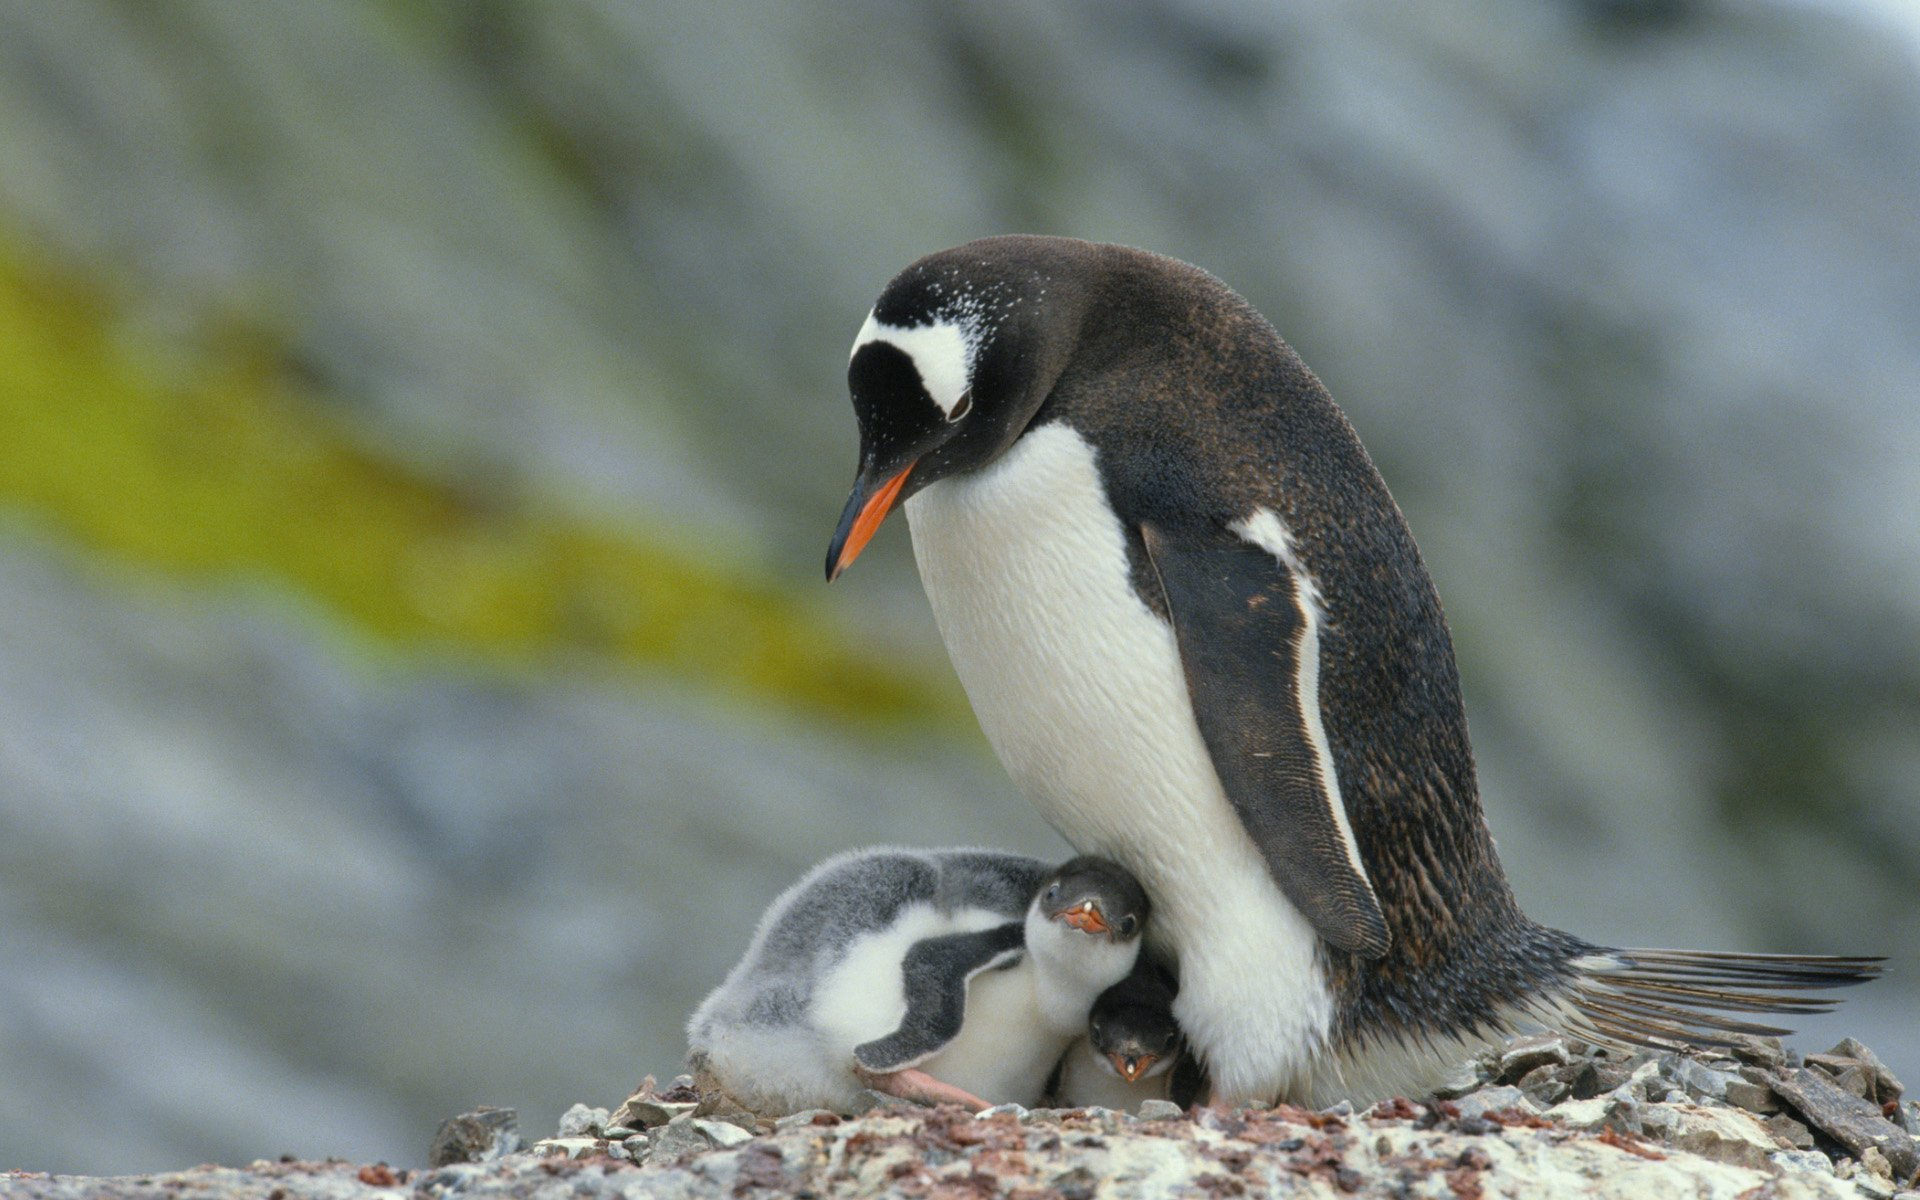 Mother and Baby Penguins Wallpaper